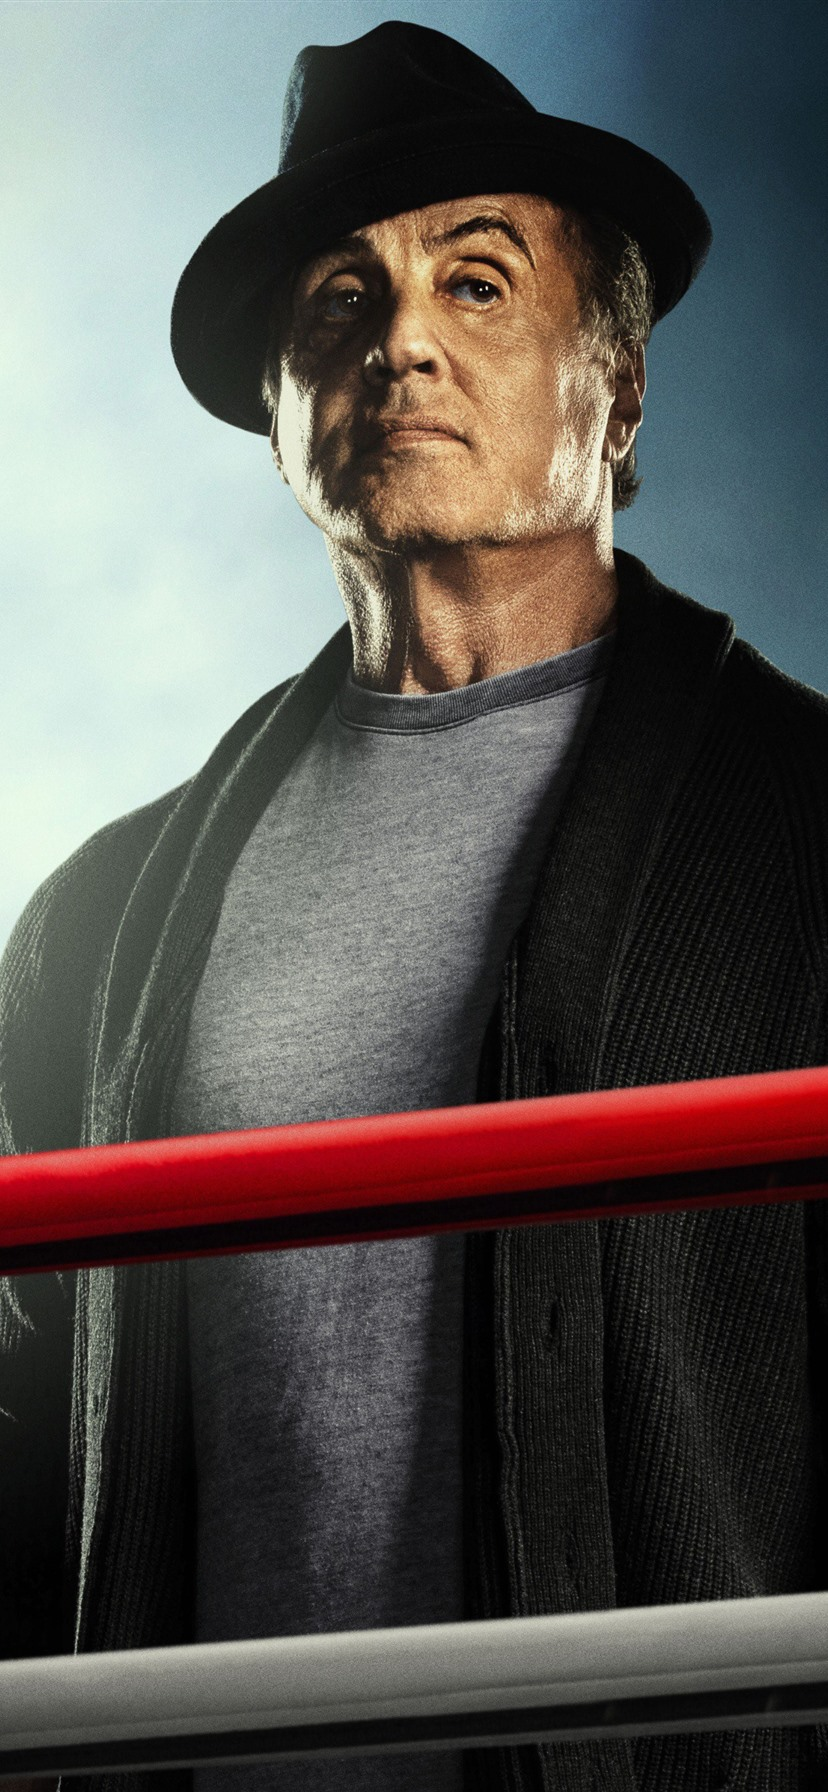 sylvester stallone creed 2 1242x2688 iphone xs max wallpaper background picture image. Black Bedroom Furniture Sets. Home Design Ideas